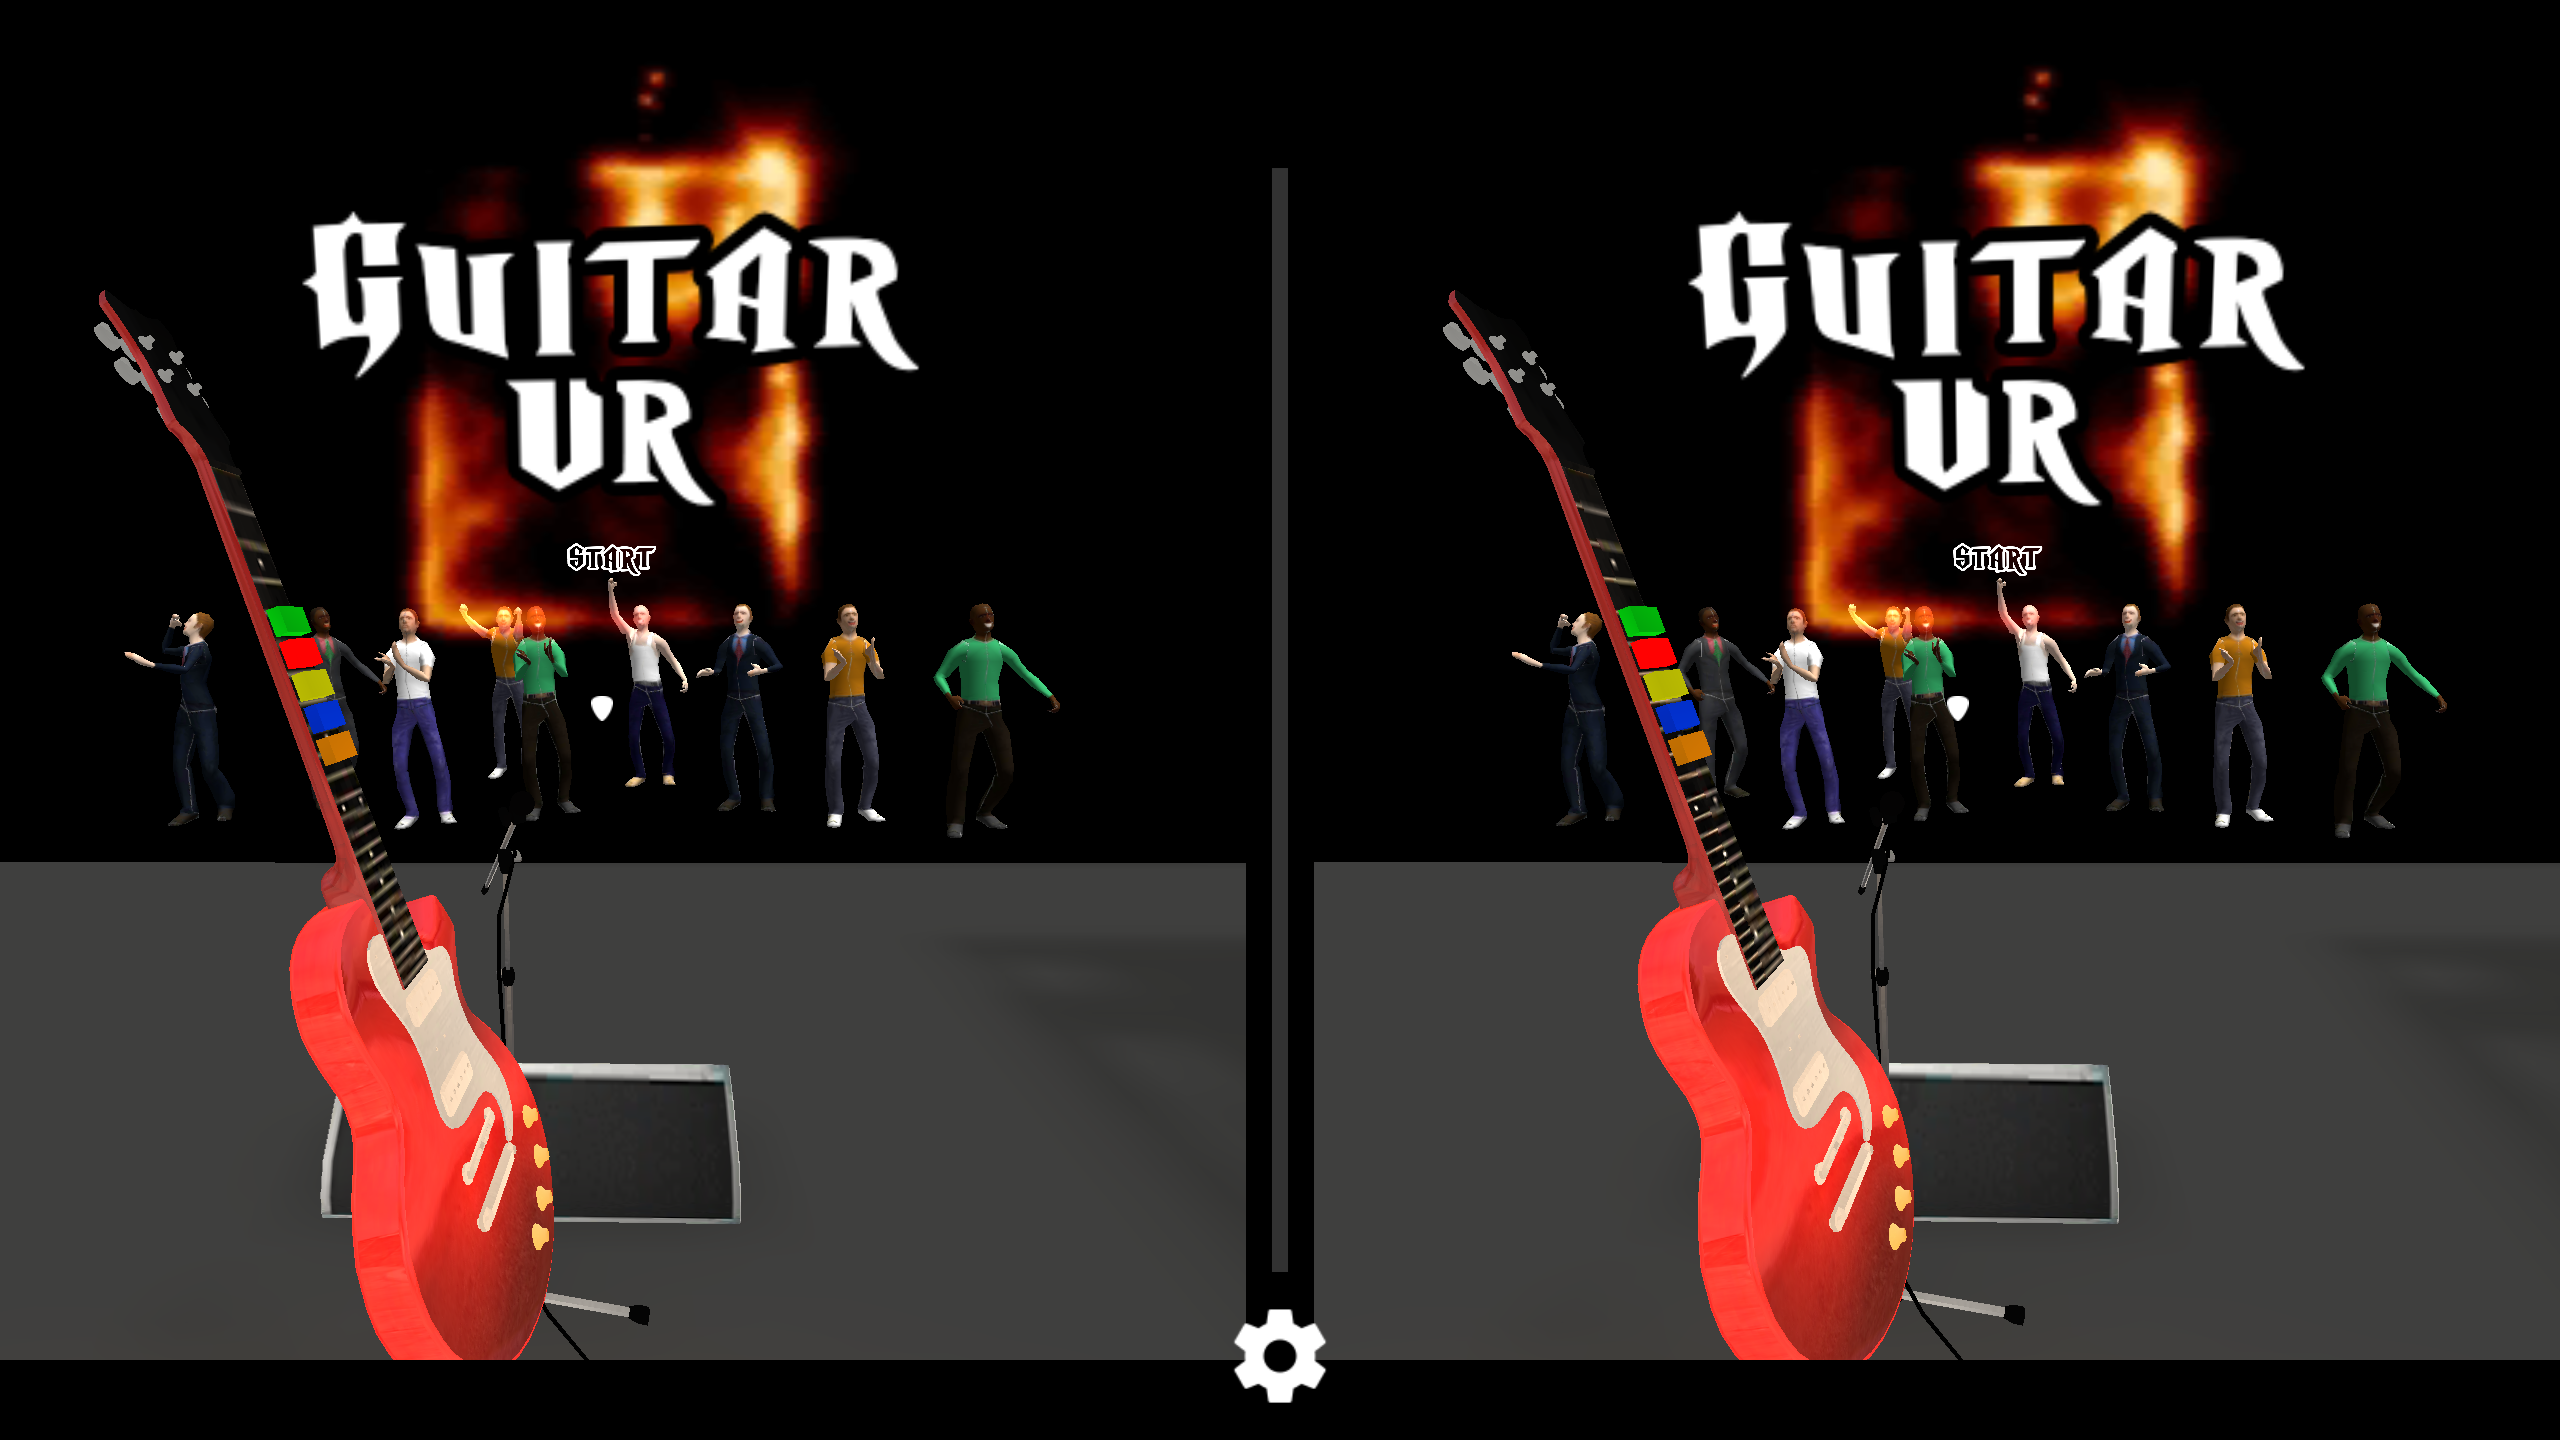 screenshot 2 Guitar VR content image